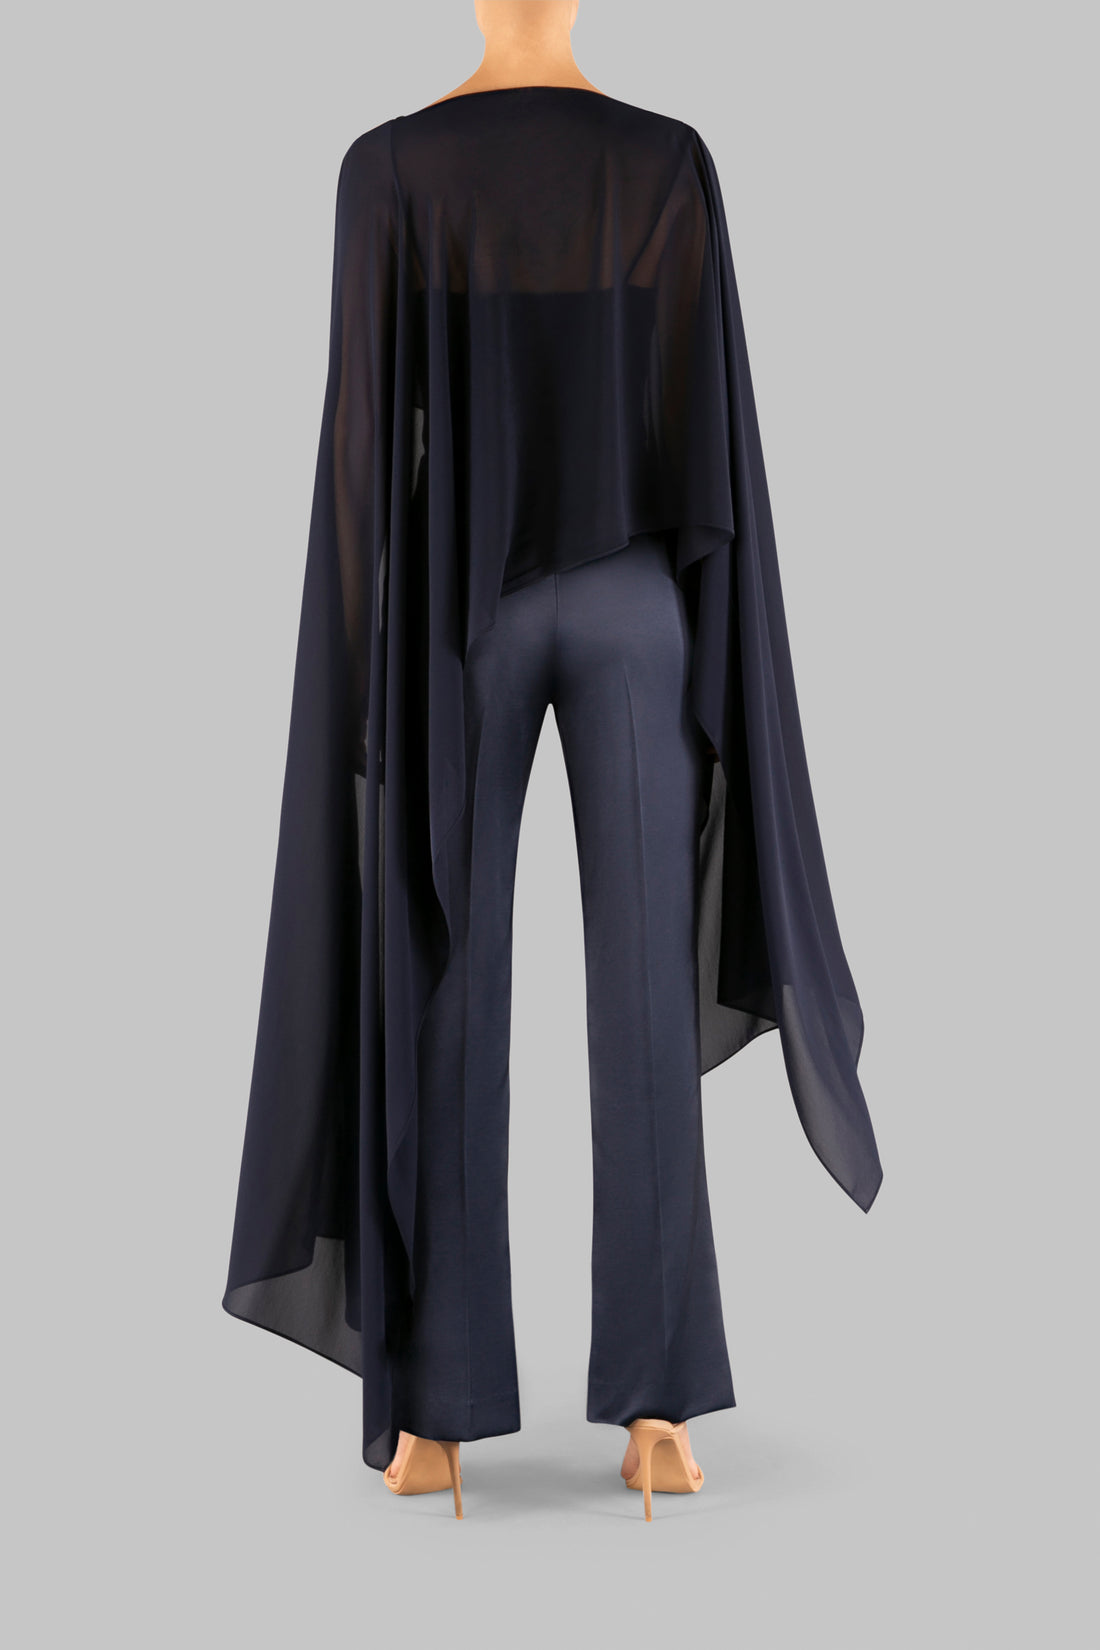 NAVY GEORGETTE GATSBY COVER UP